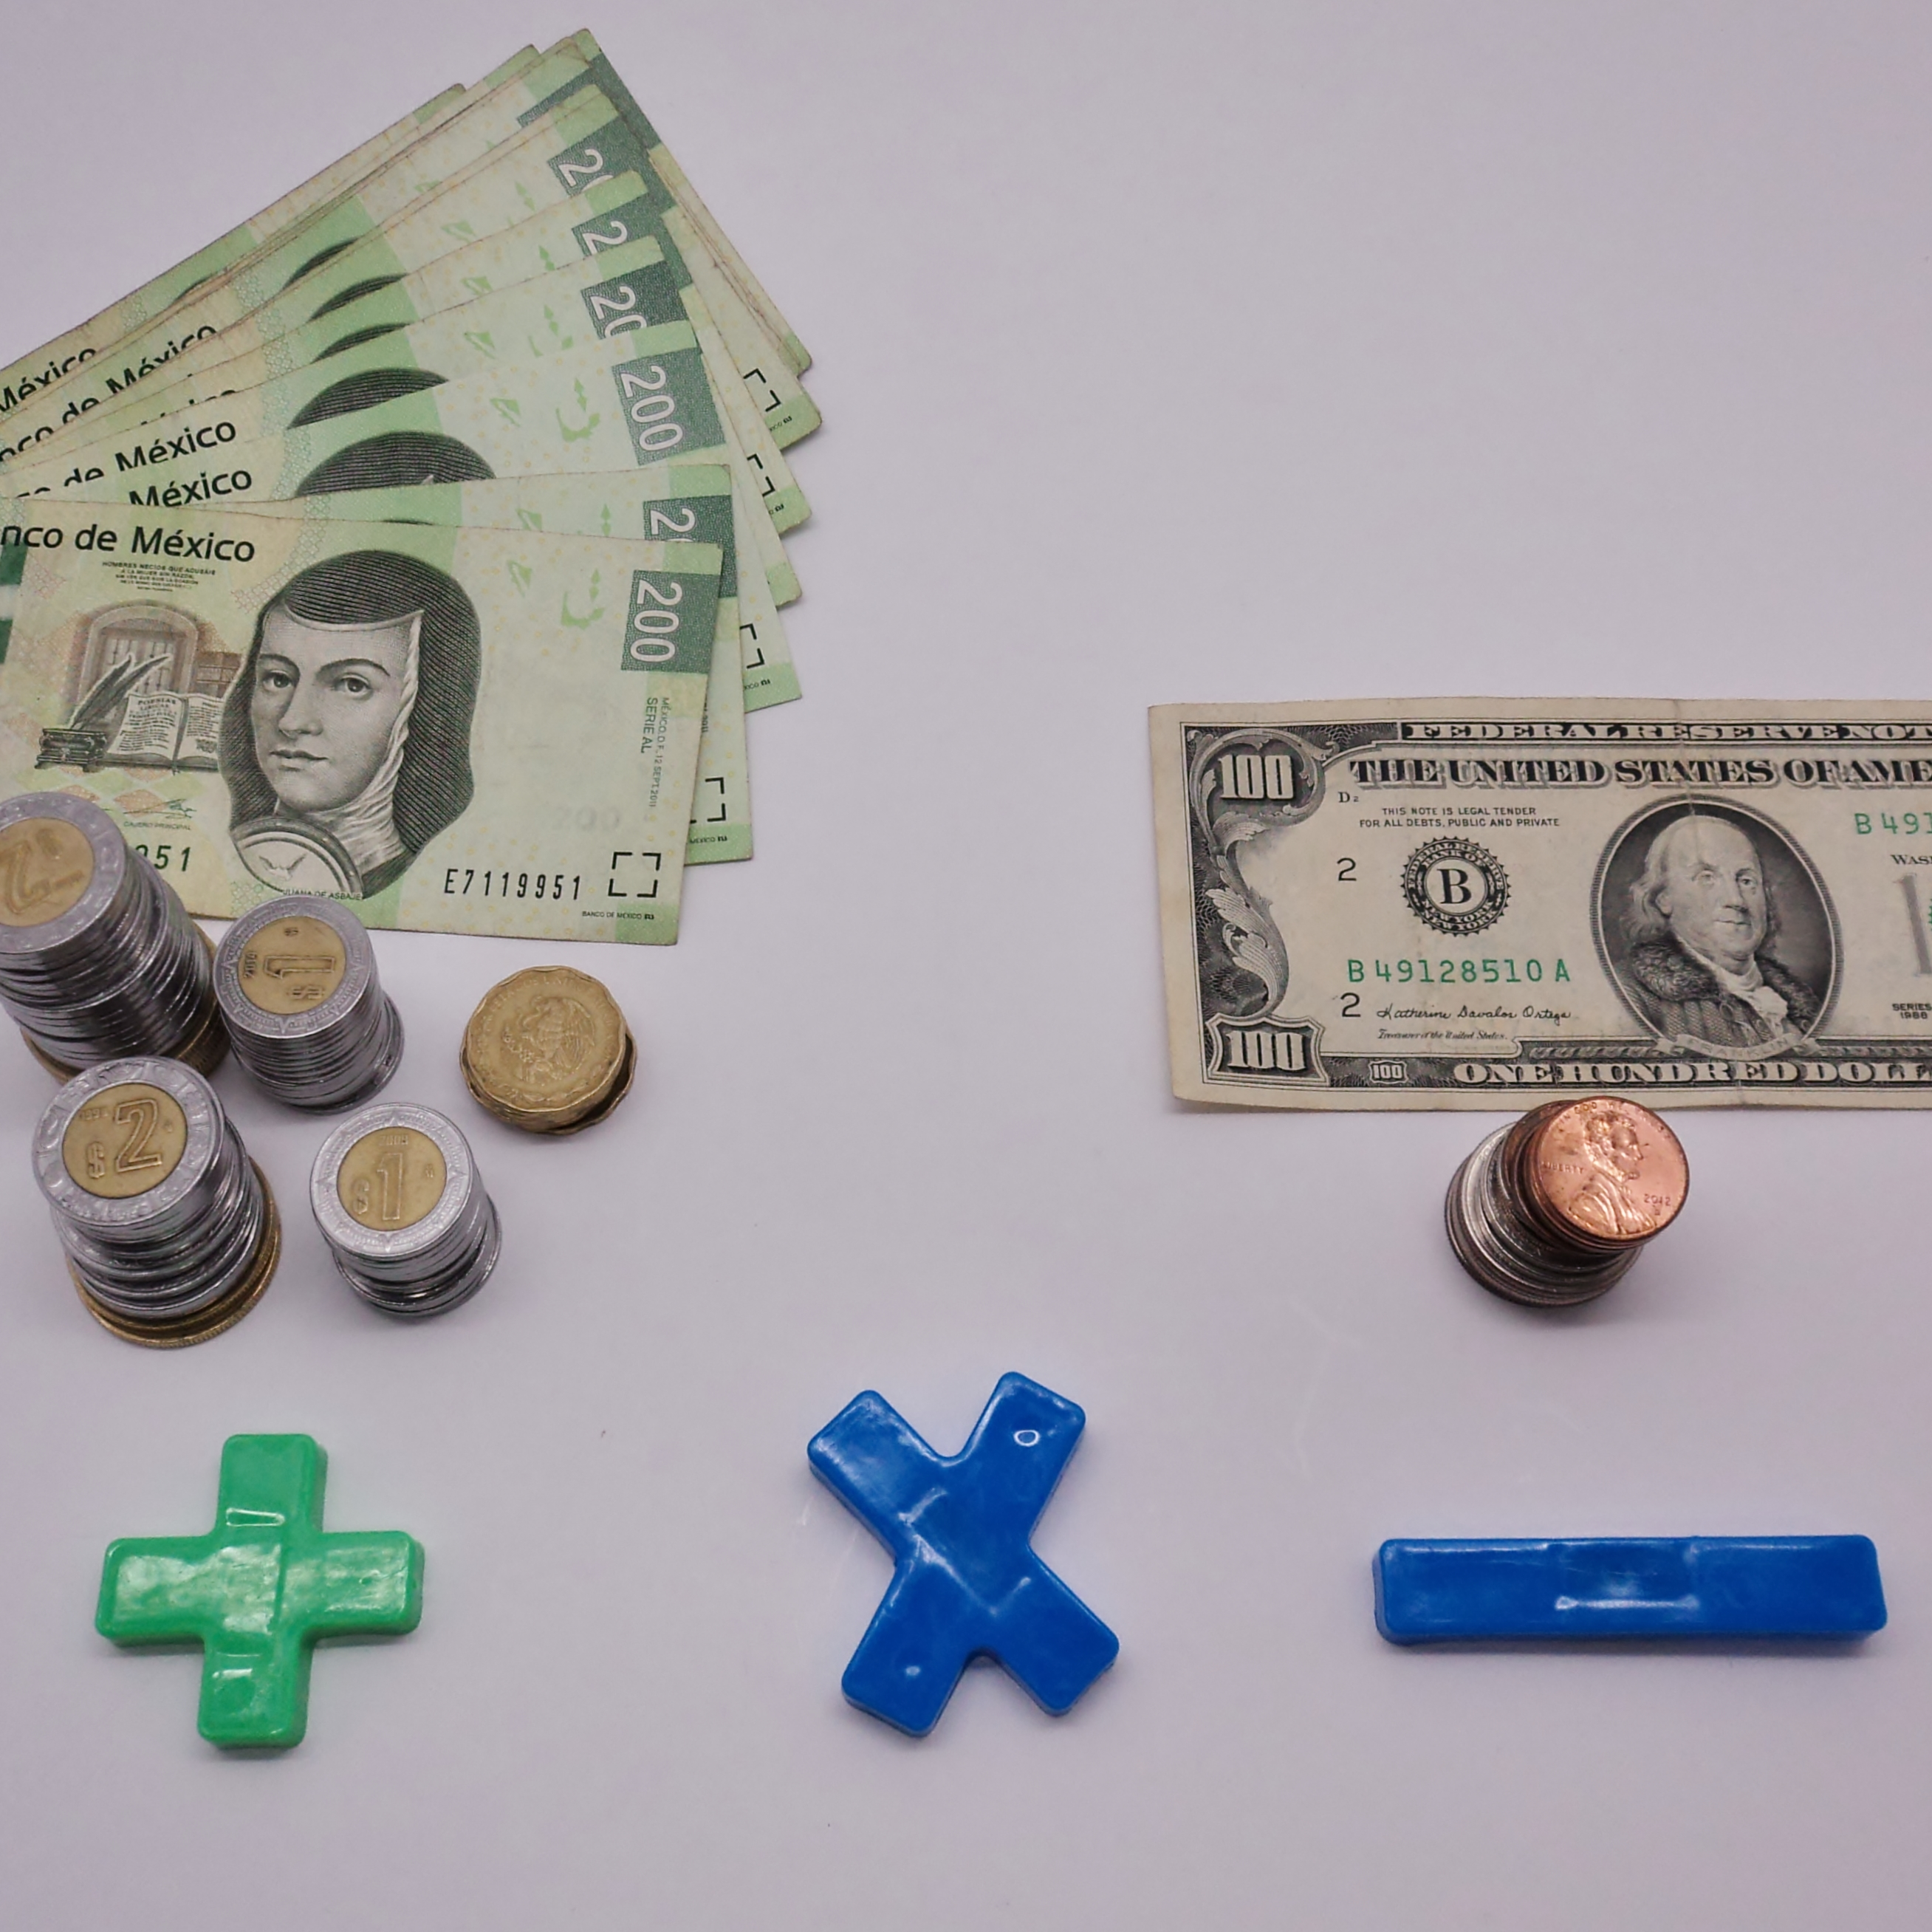 Mexican Currency Exchange Money Dollar Hq Photo